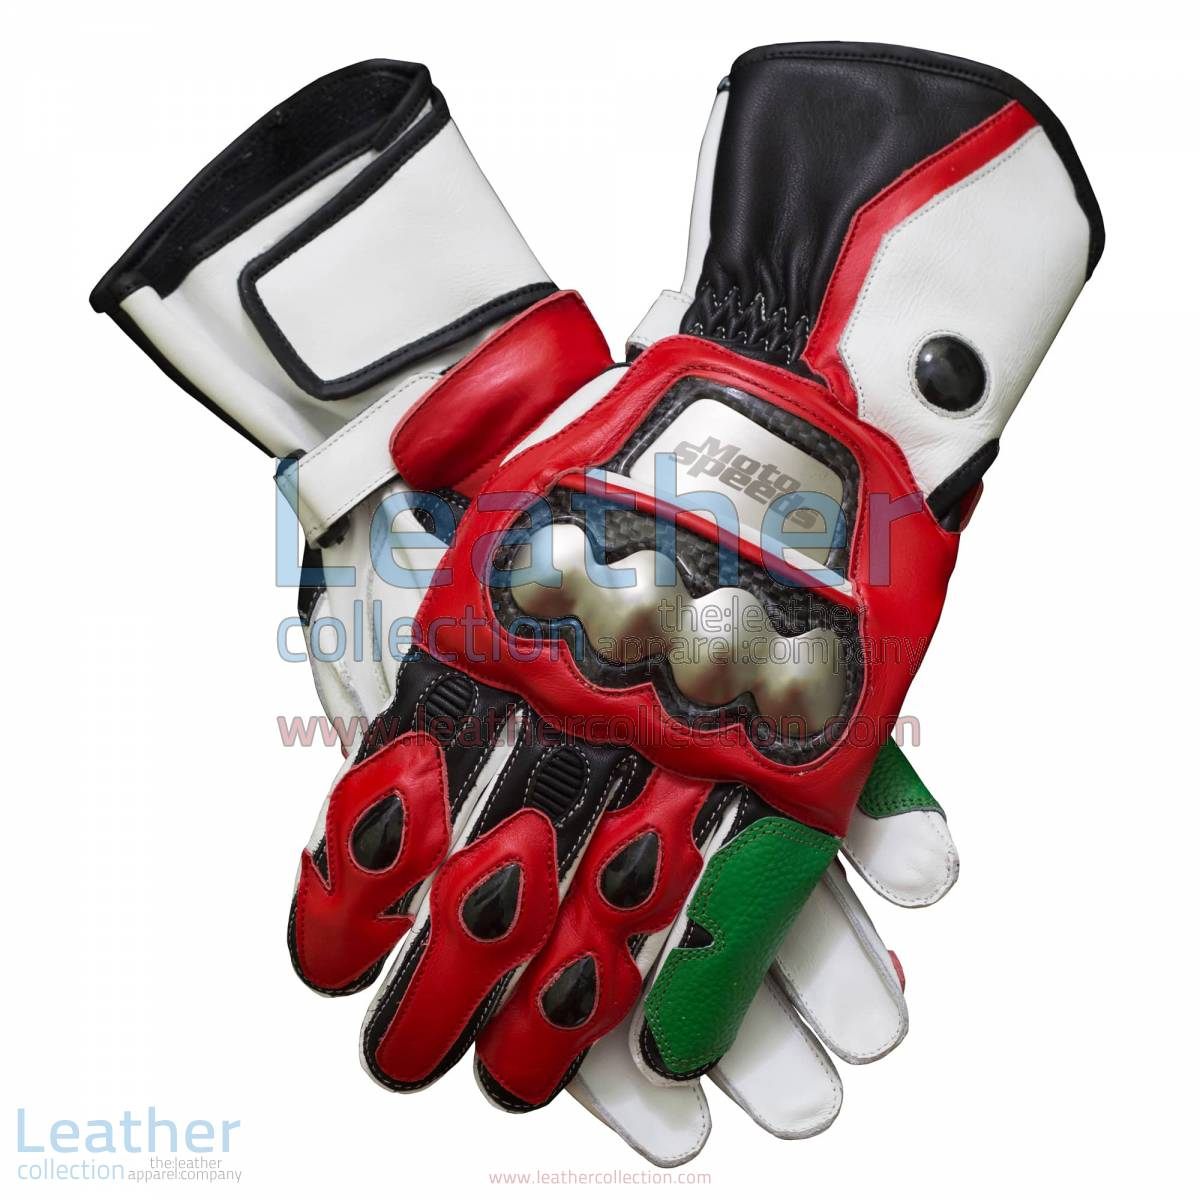 Tom Sykes Kawasaki 2015 MotoGP Gloves | motogp gloves